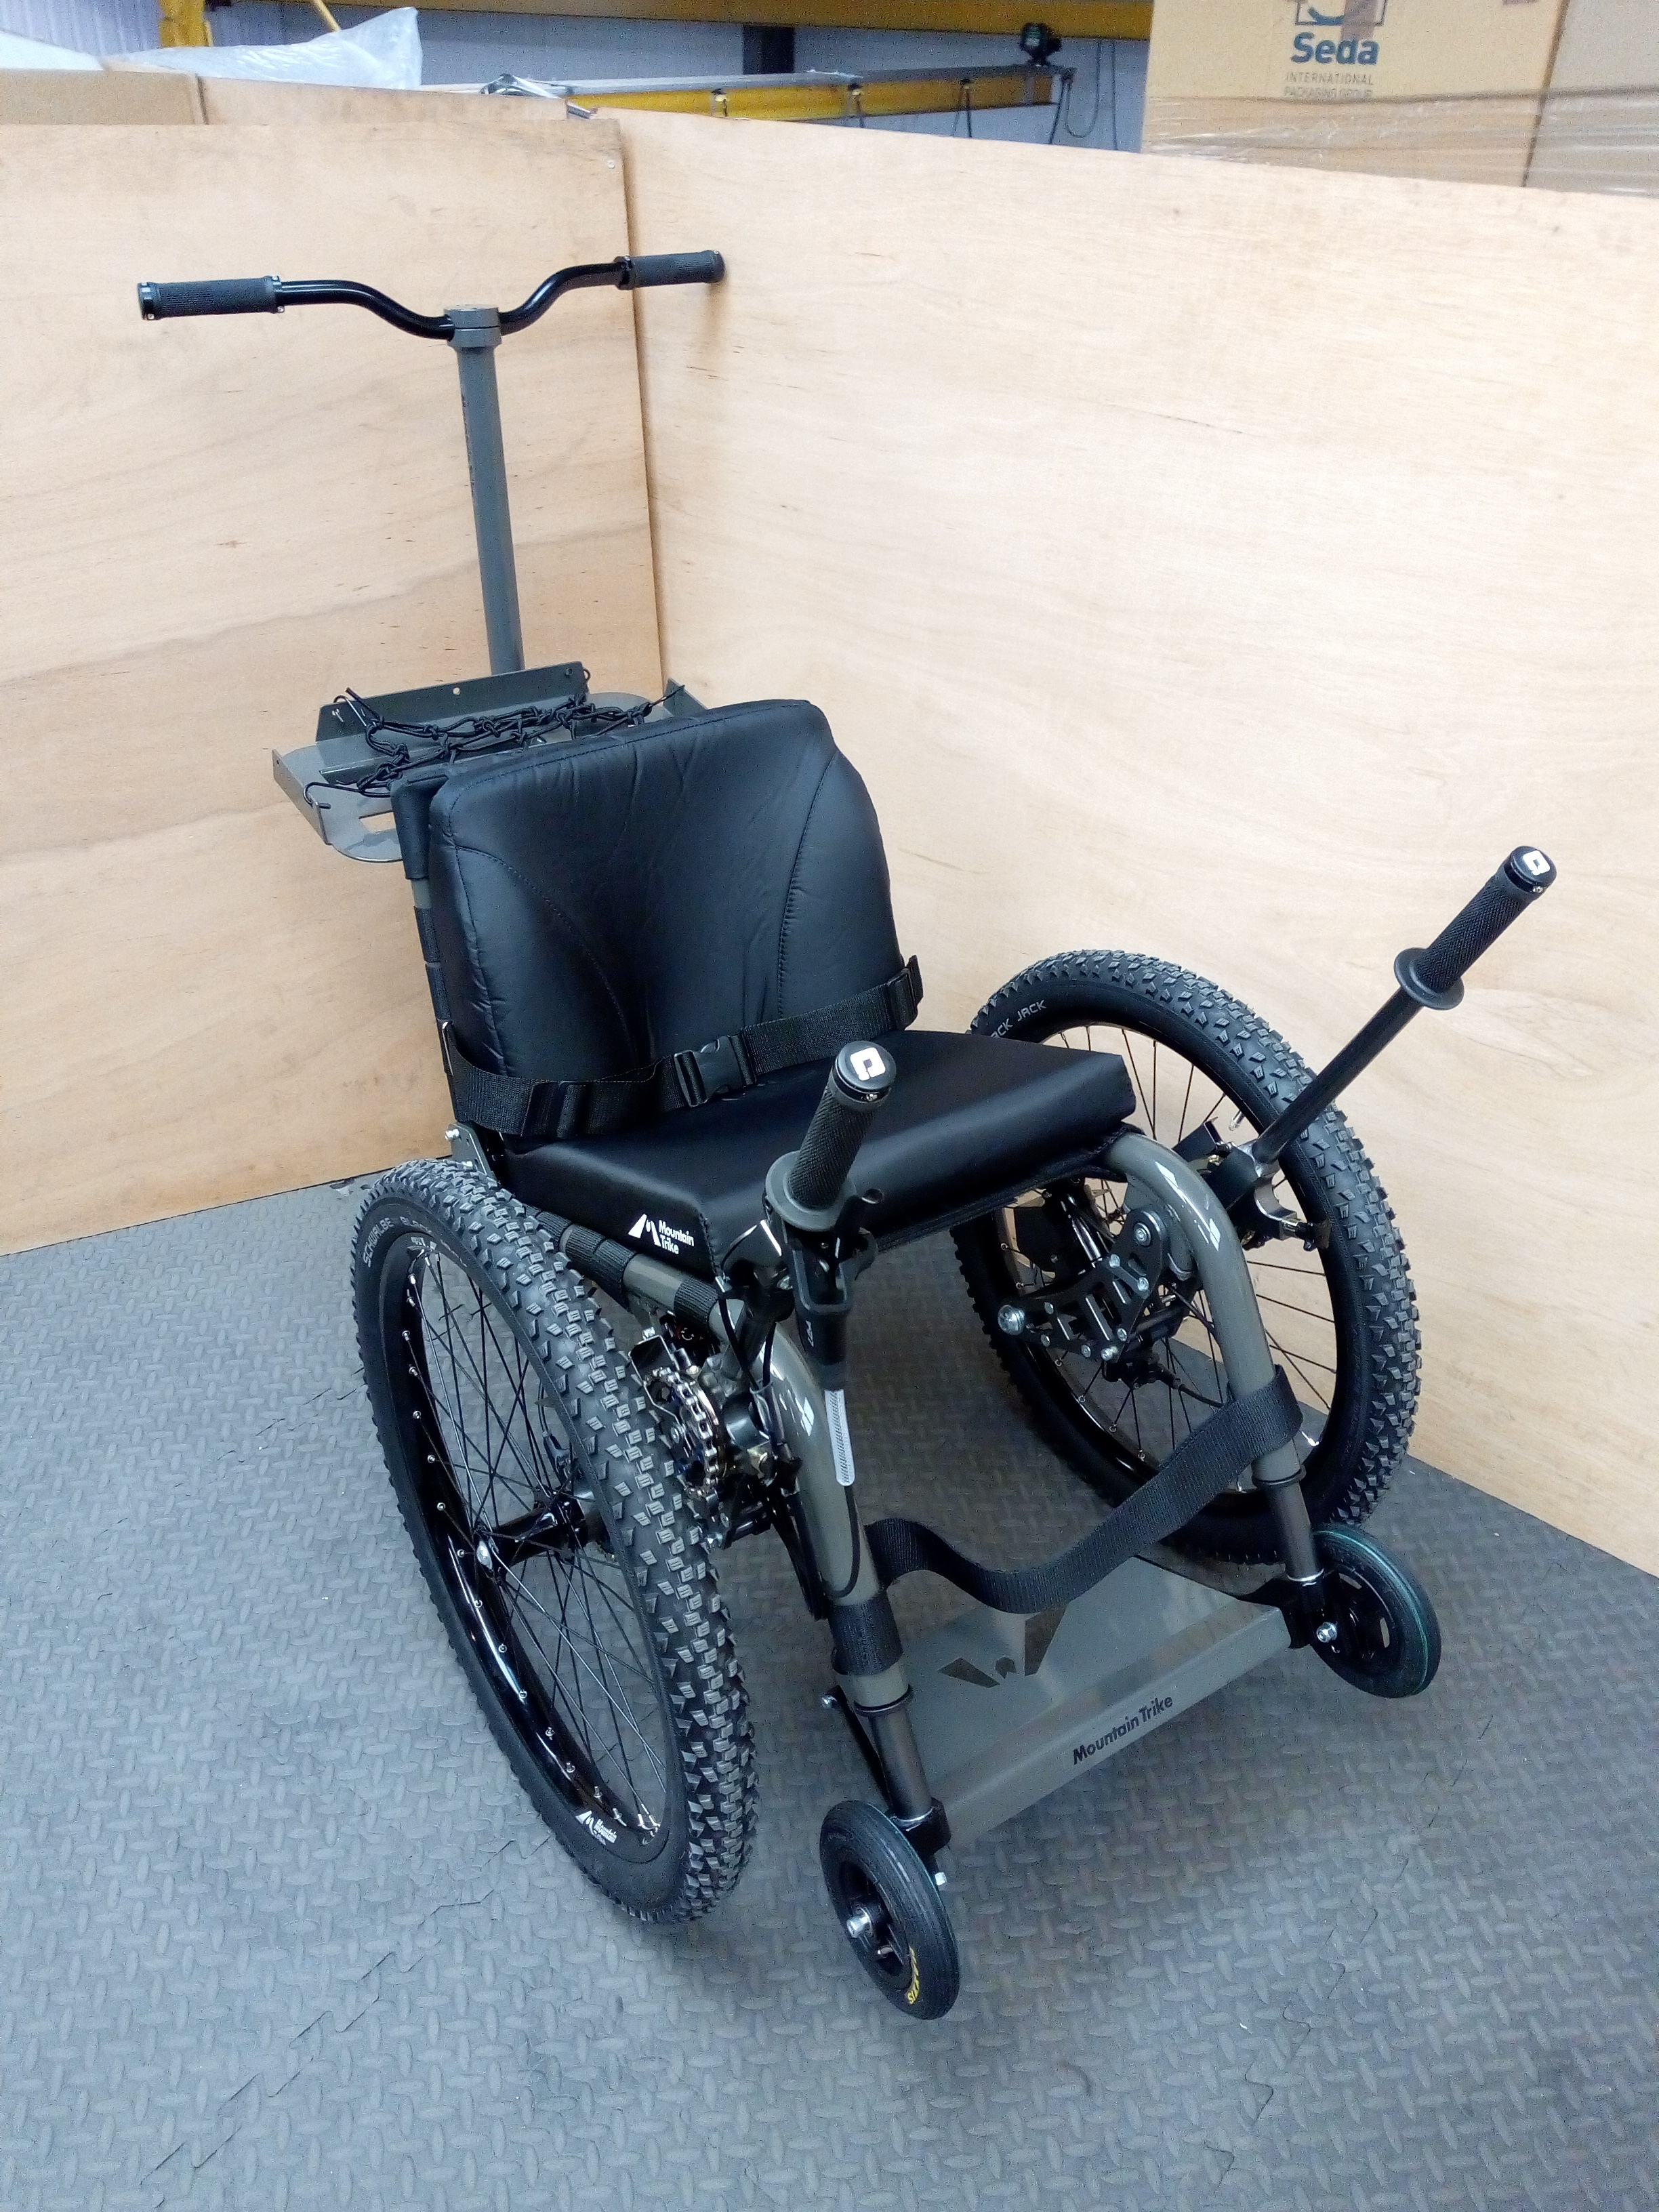 Pioneer Medical Mountain Trike demo model